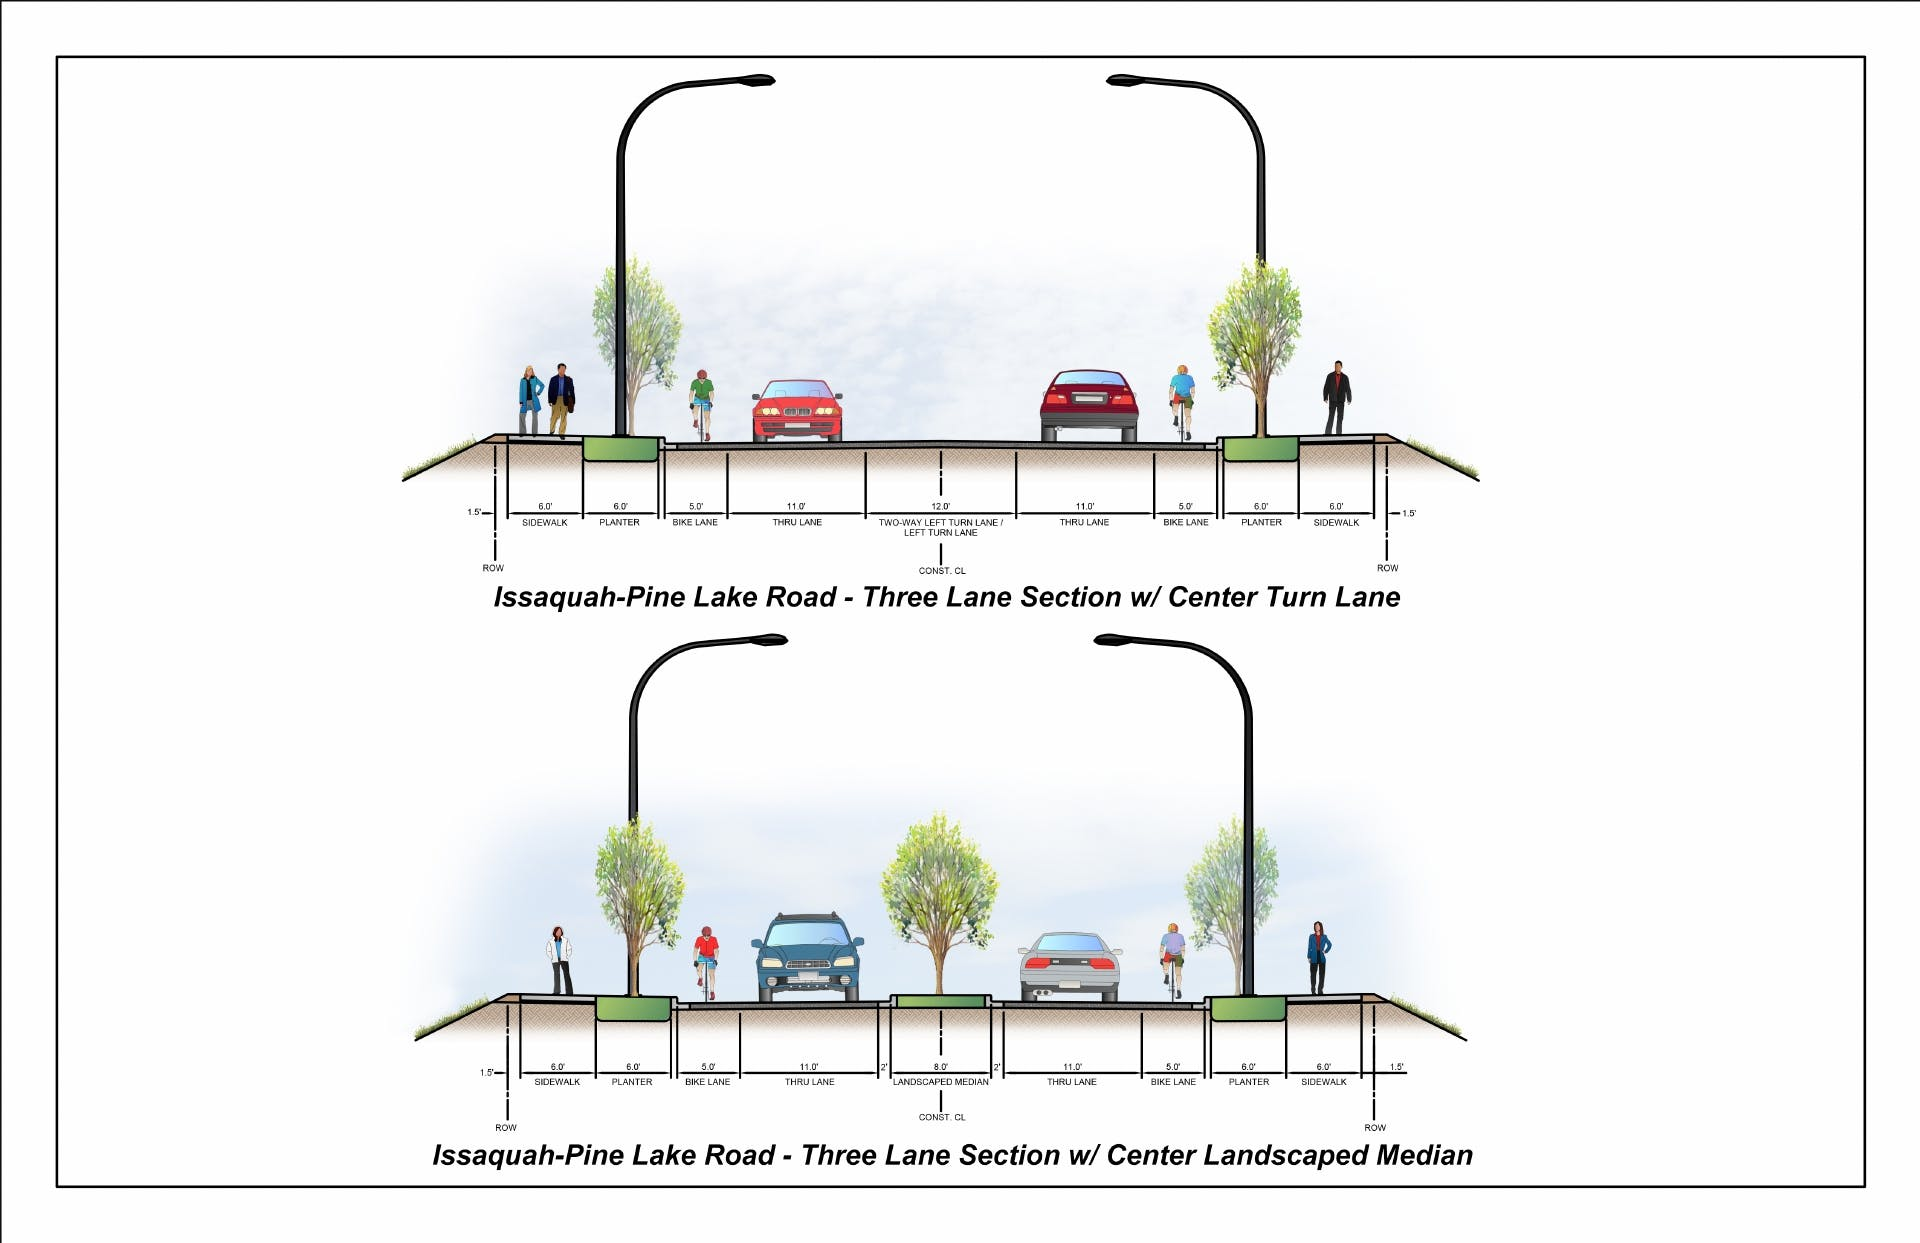 Illustration of two different cross-sections of Issaquah-Pine Lake Road.